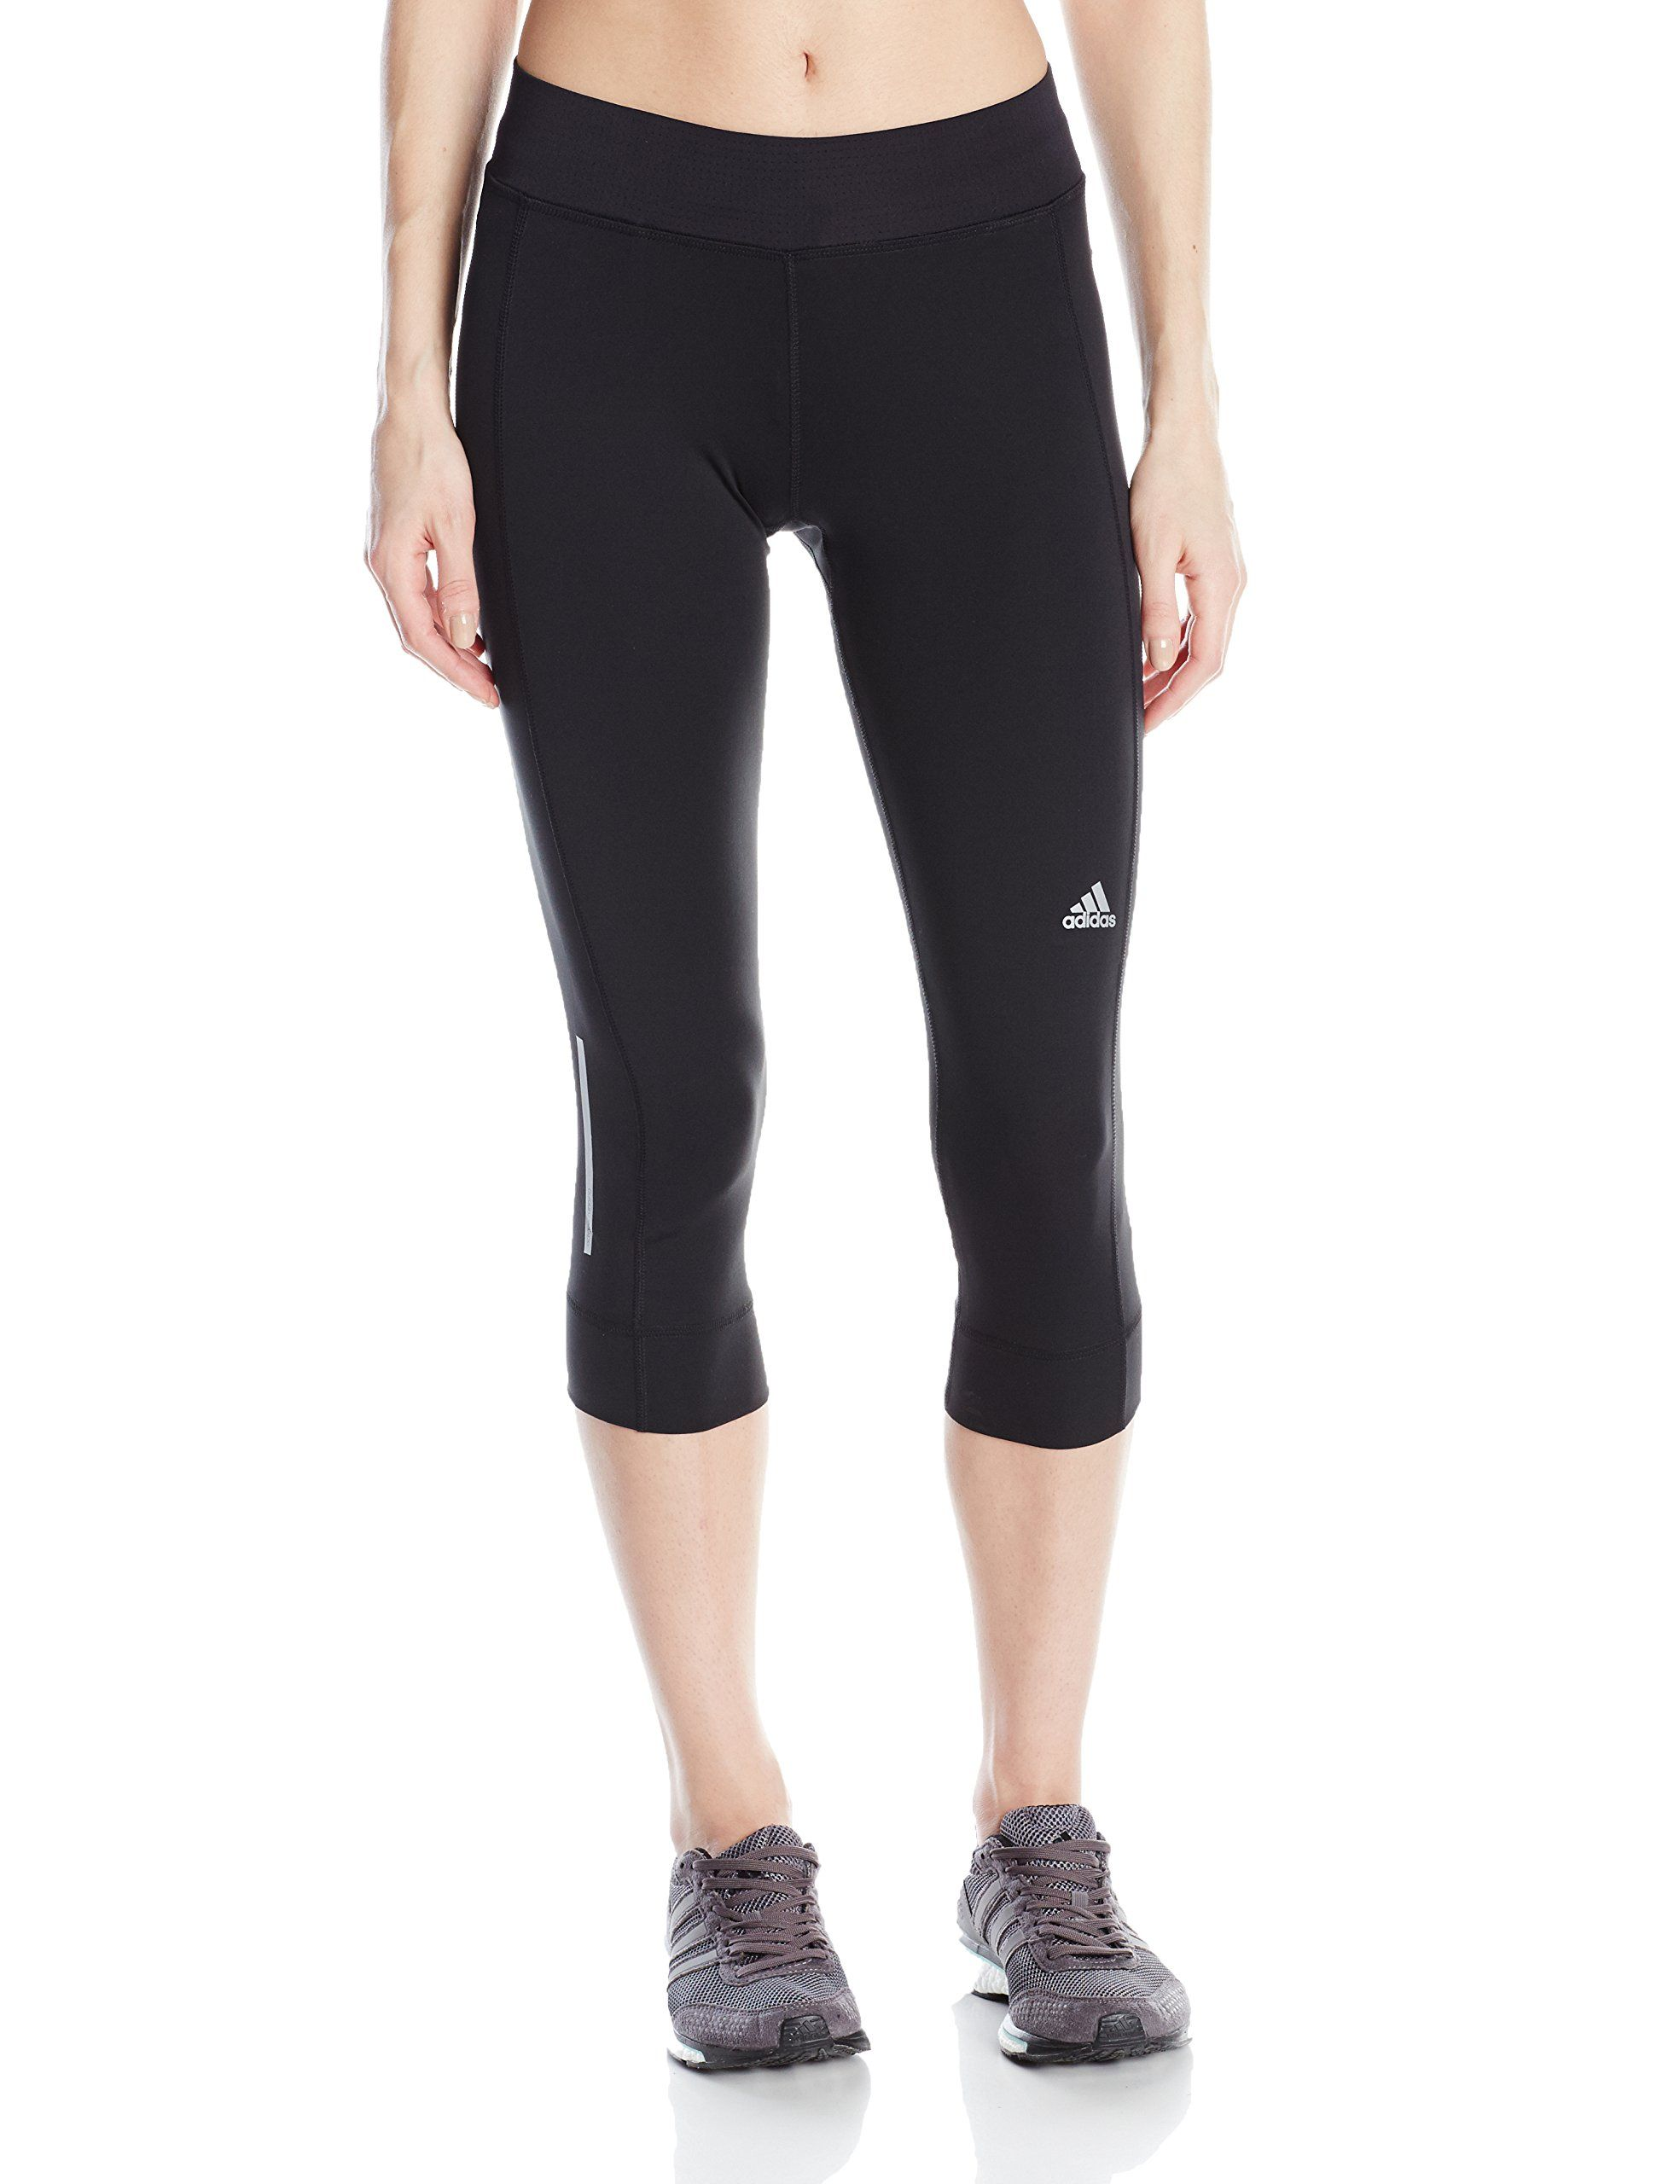 b56833e6b84c8 adidas Performance Women's Sequencials Three-Quarter Tights, Black, X-Small